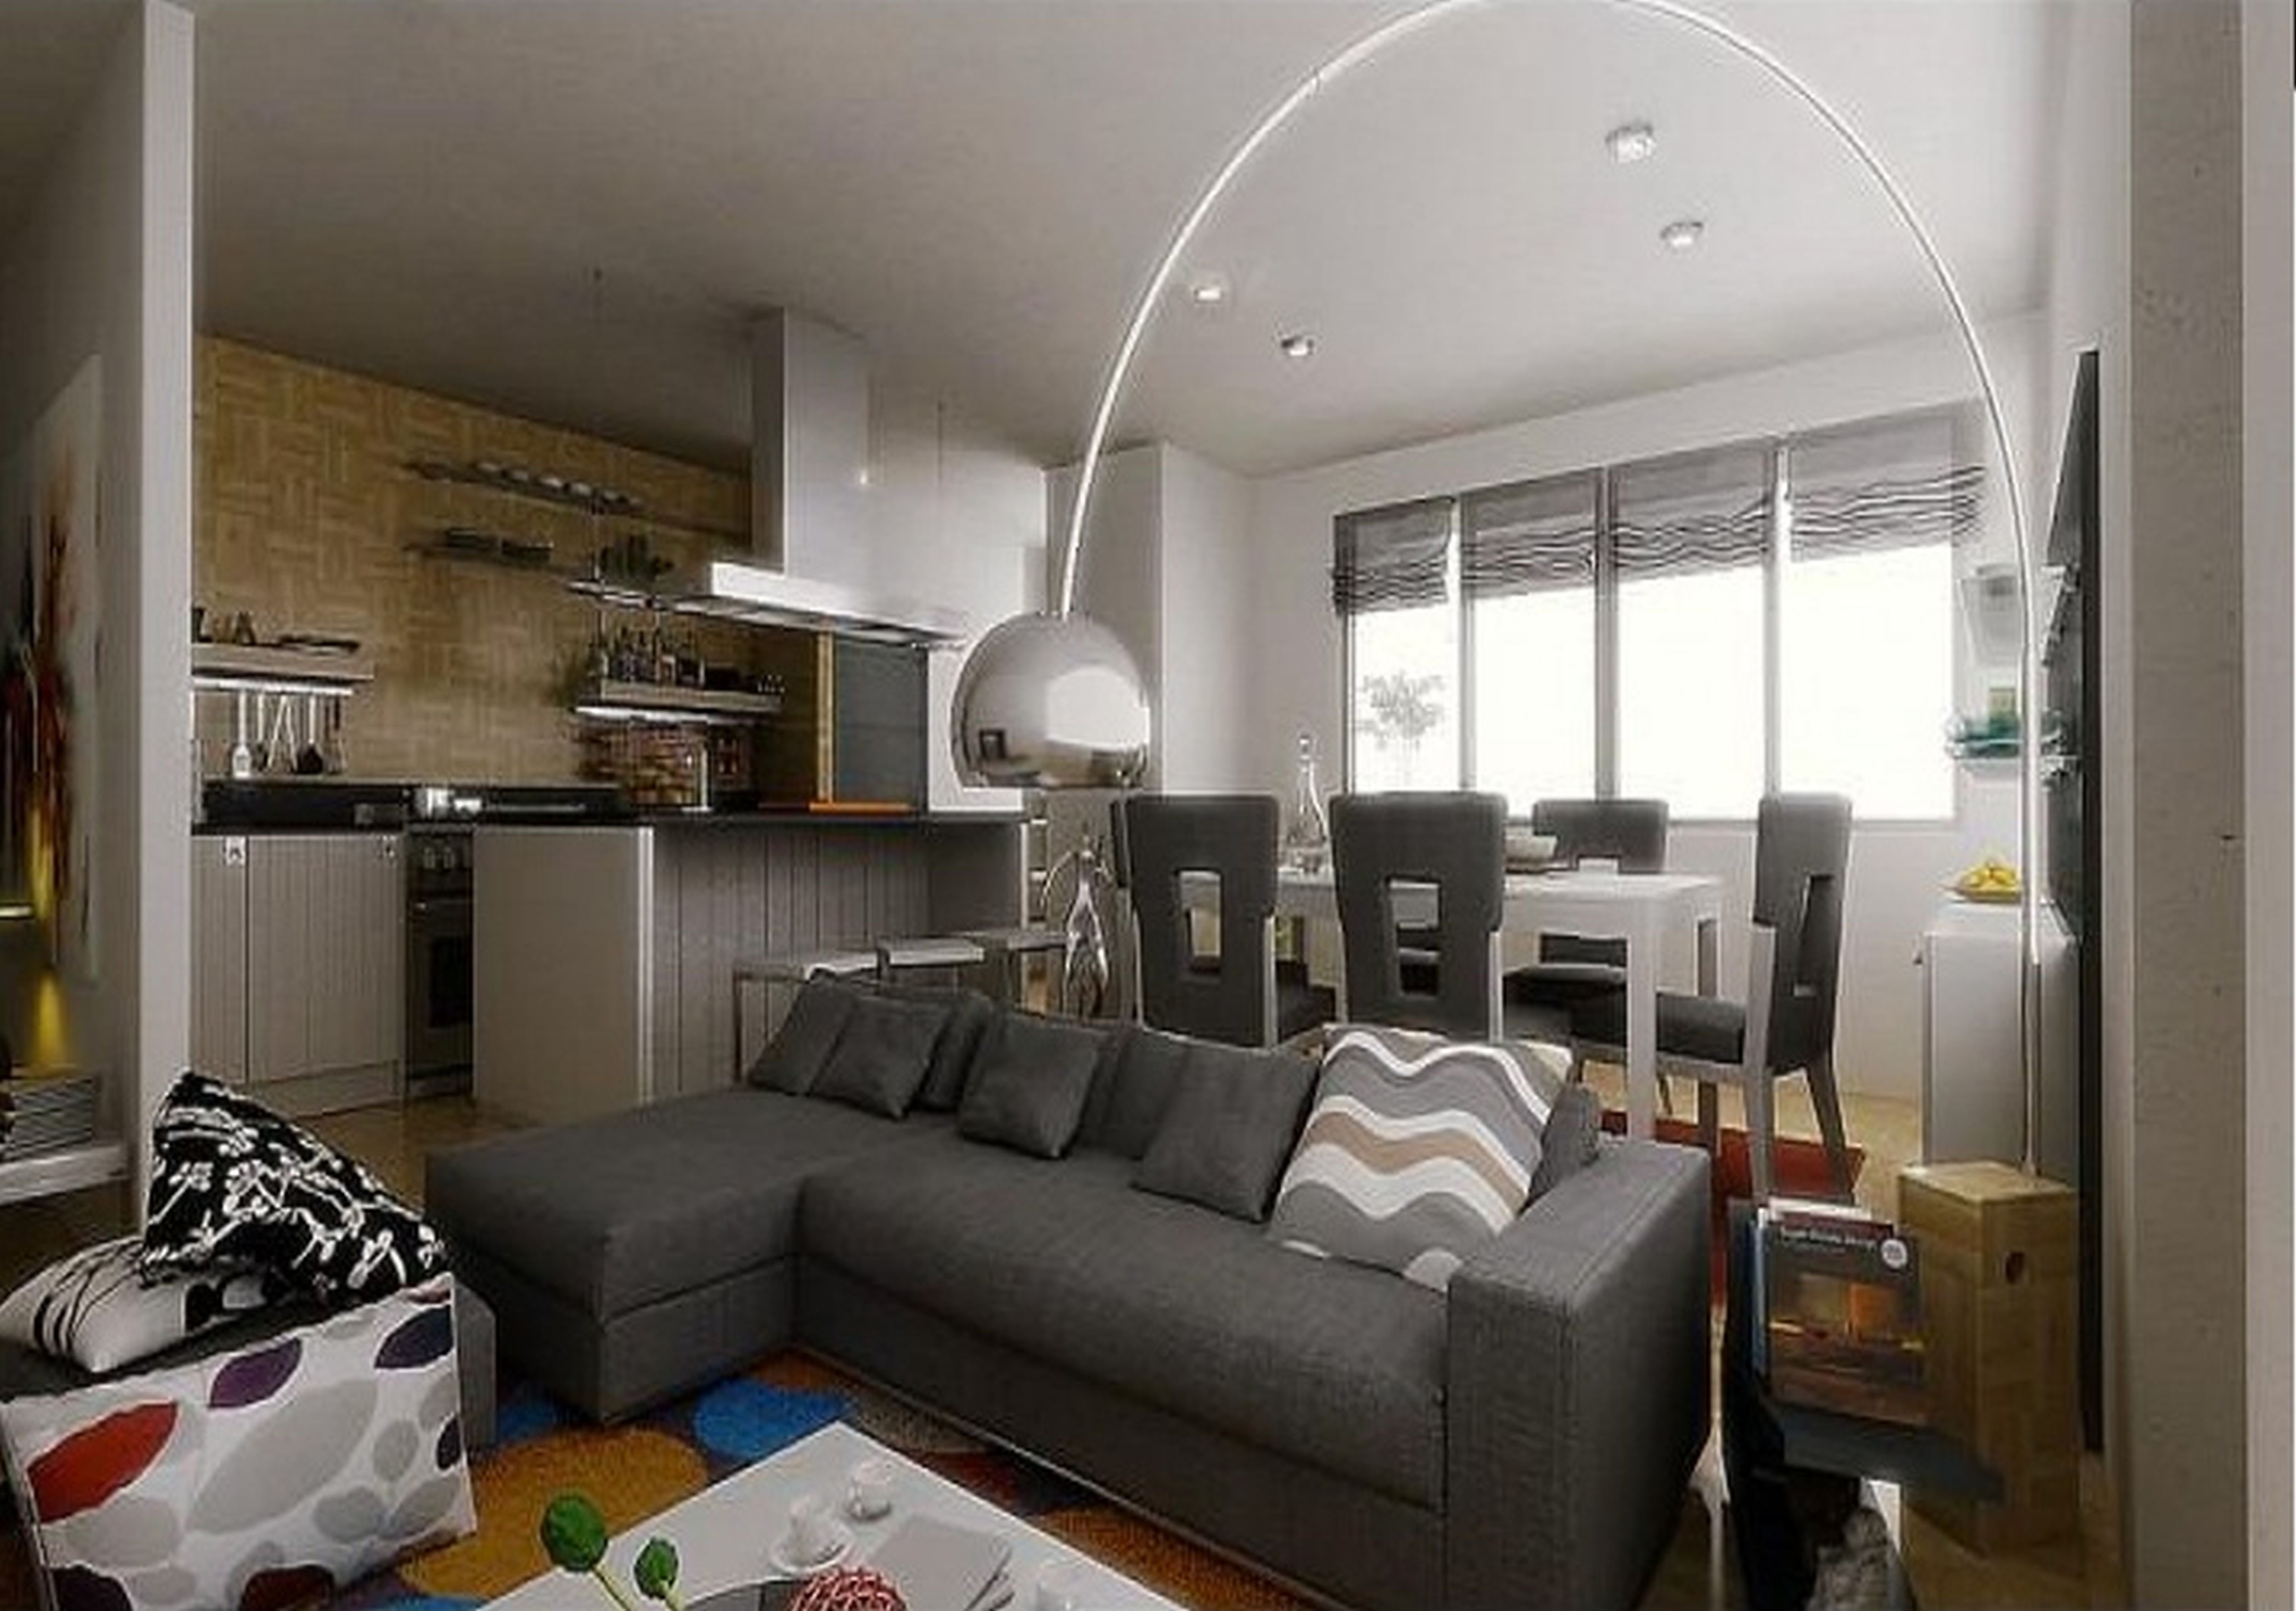 10 Best Living Room Ideas For Small Apartment apartment living room ideas you can apply in affordable ways traba 2020